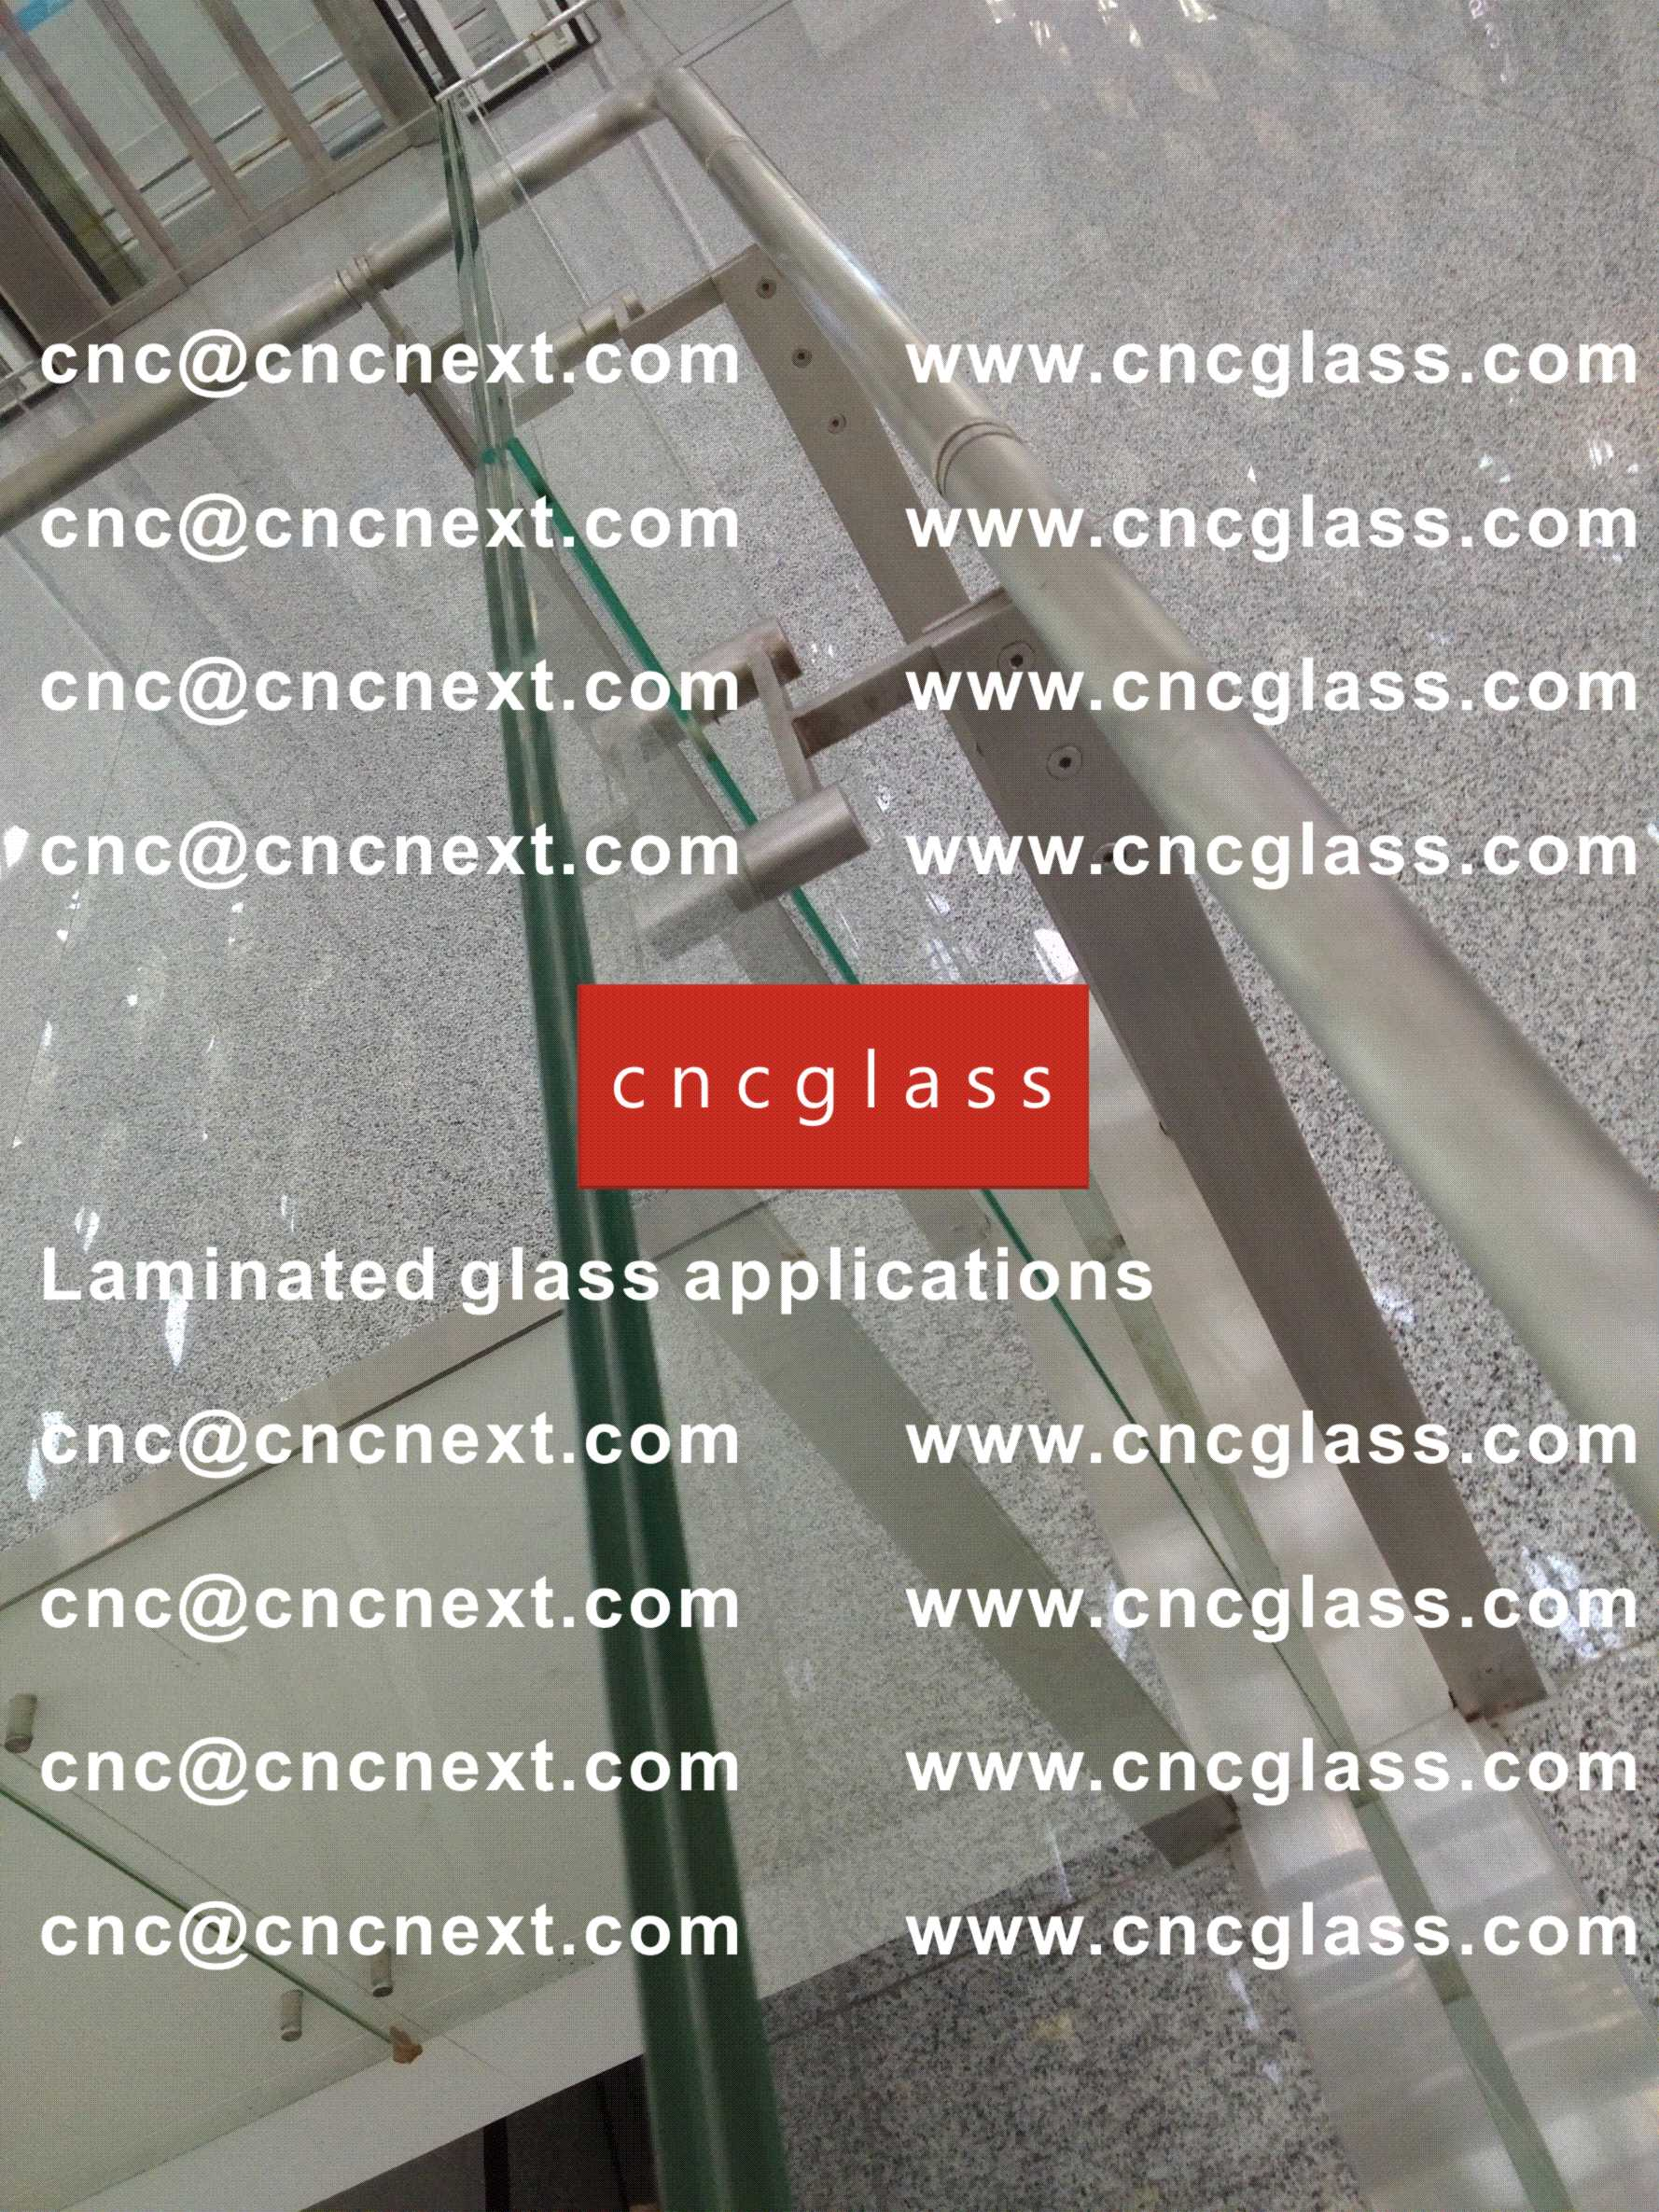 003 EVAFORCE LAMINATED GLASS